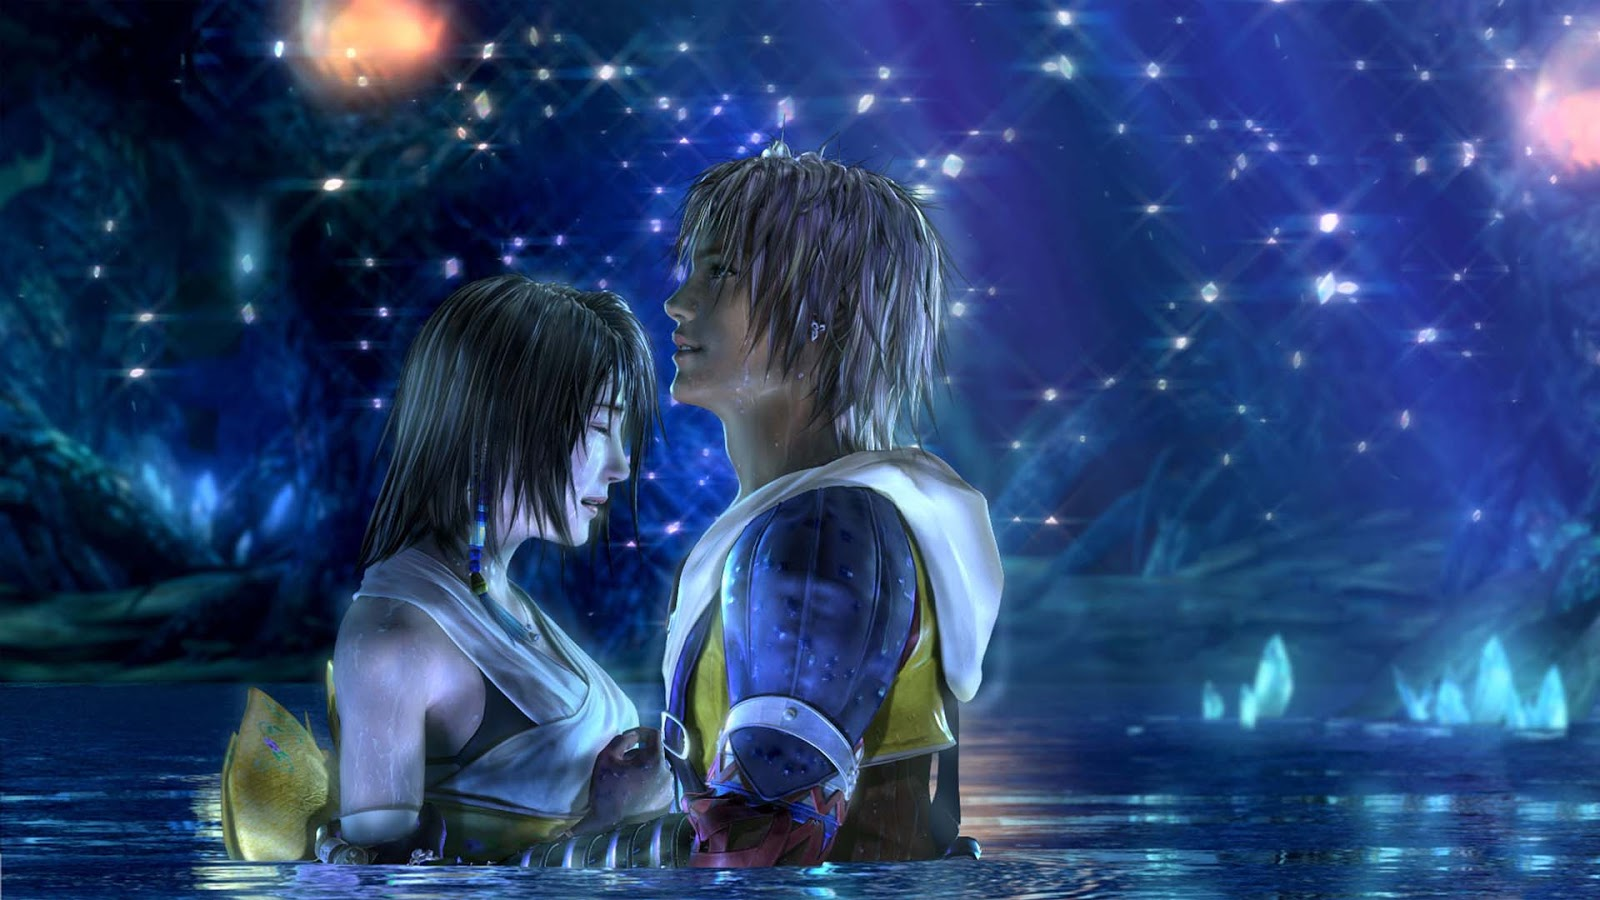 Animated Love Couple HD Wallpapers Free Download | Photos ...